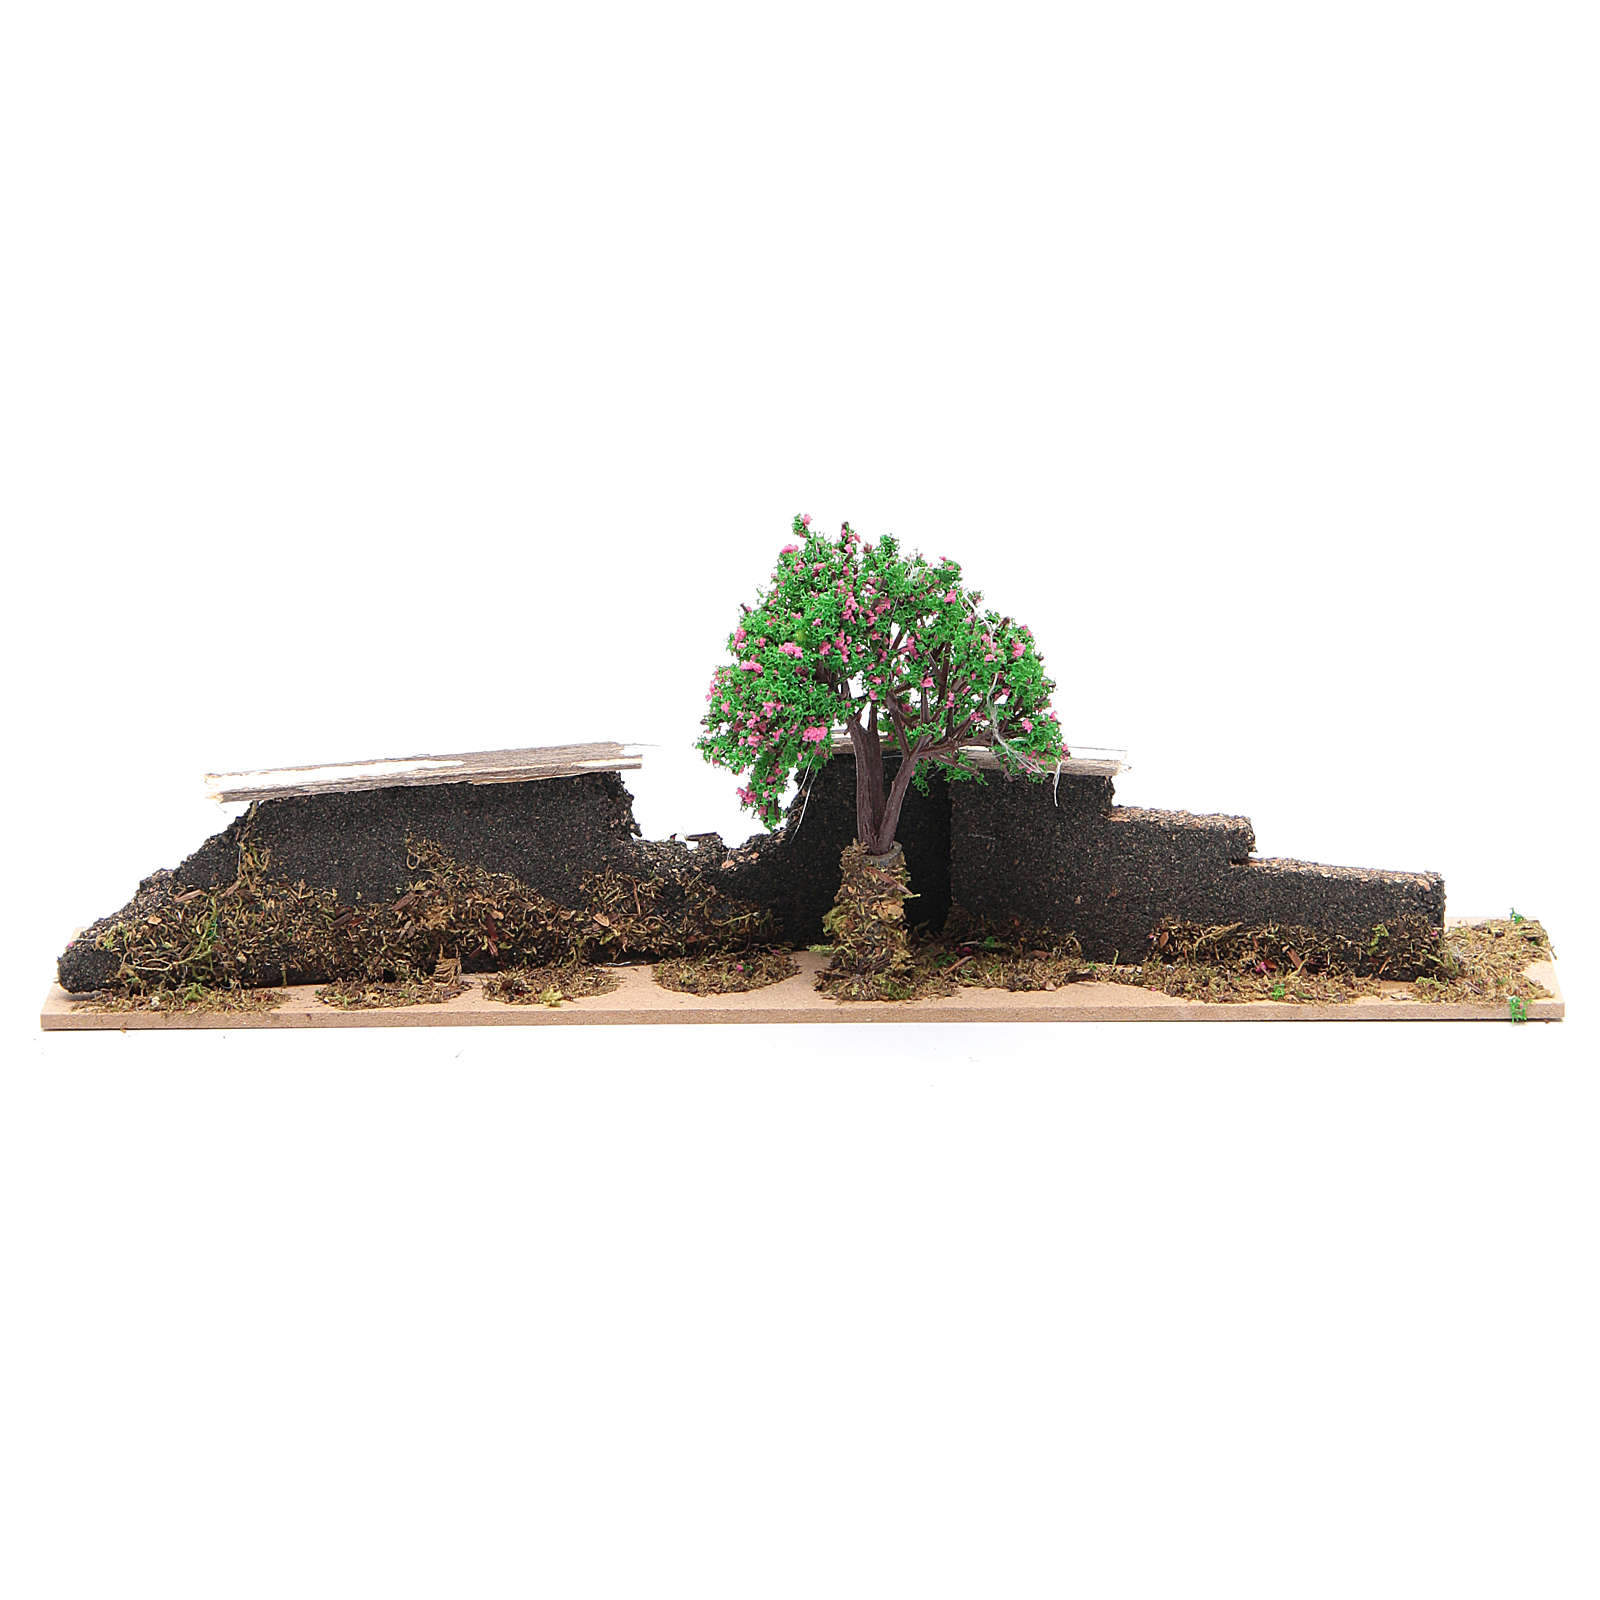 Wood fence with trees 10x30x5 cm 4